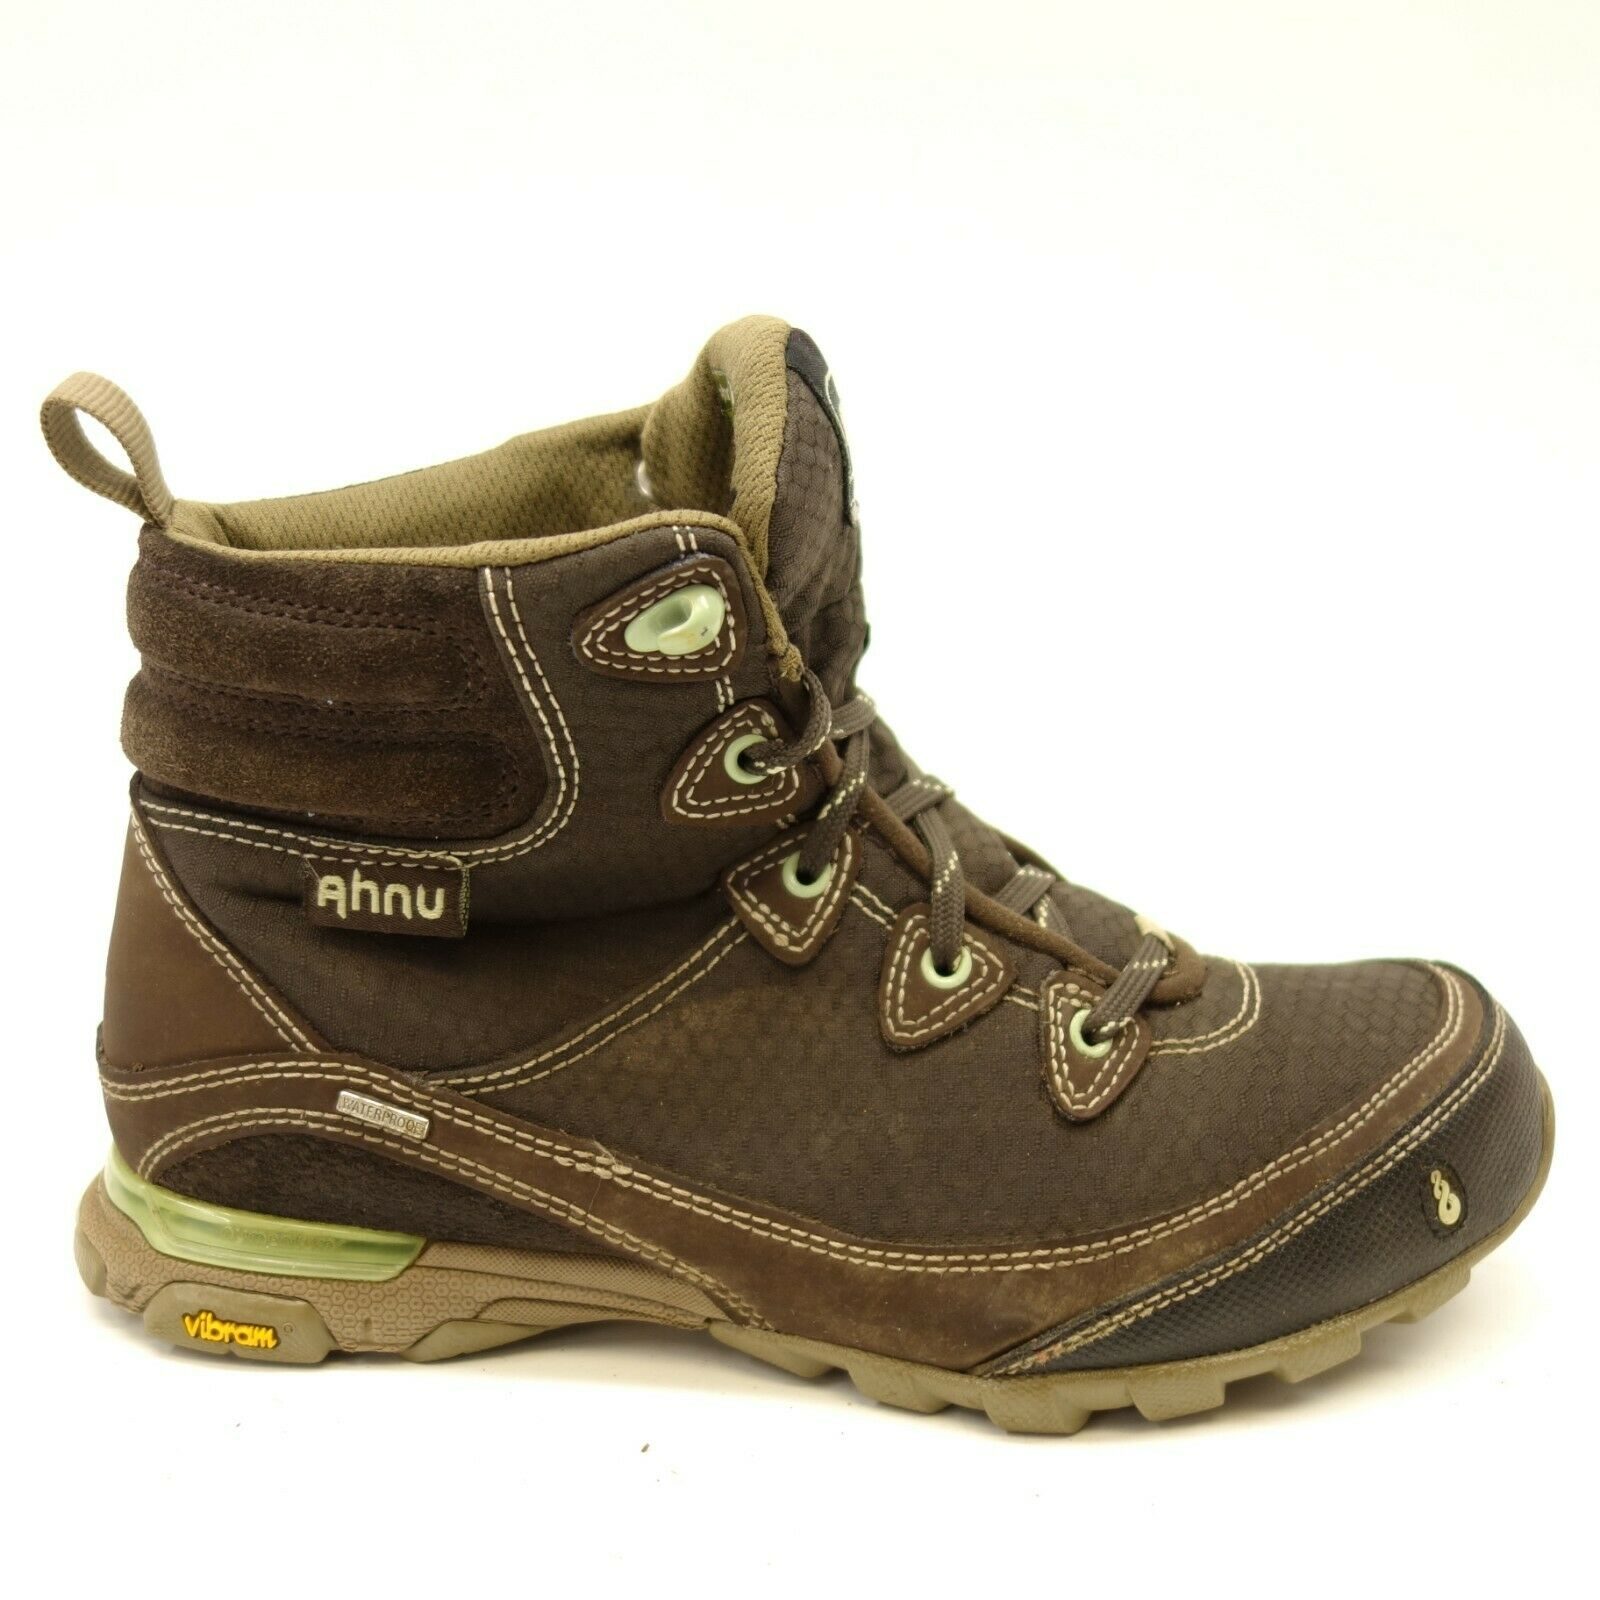 Ahnu Womens Sugarpine II WP Waterproof Athletic Trail Hiking Boots Sz 6.5